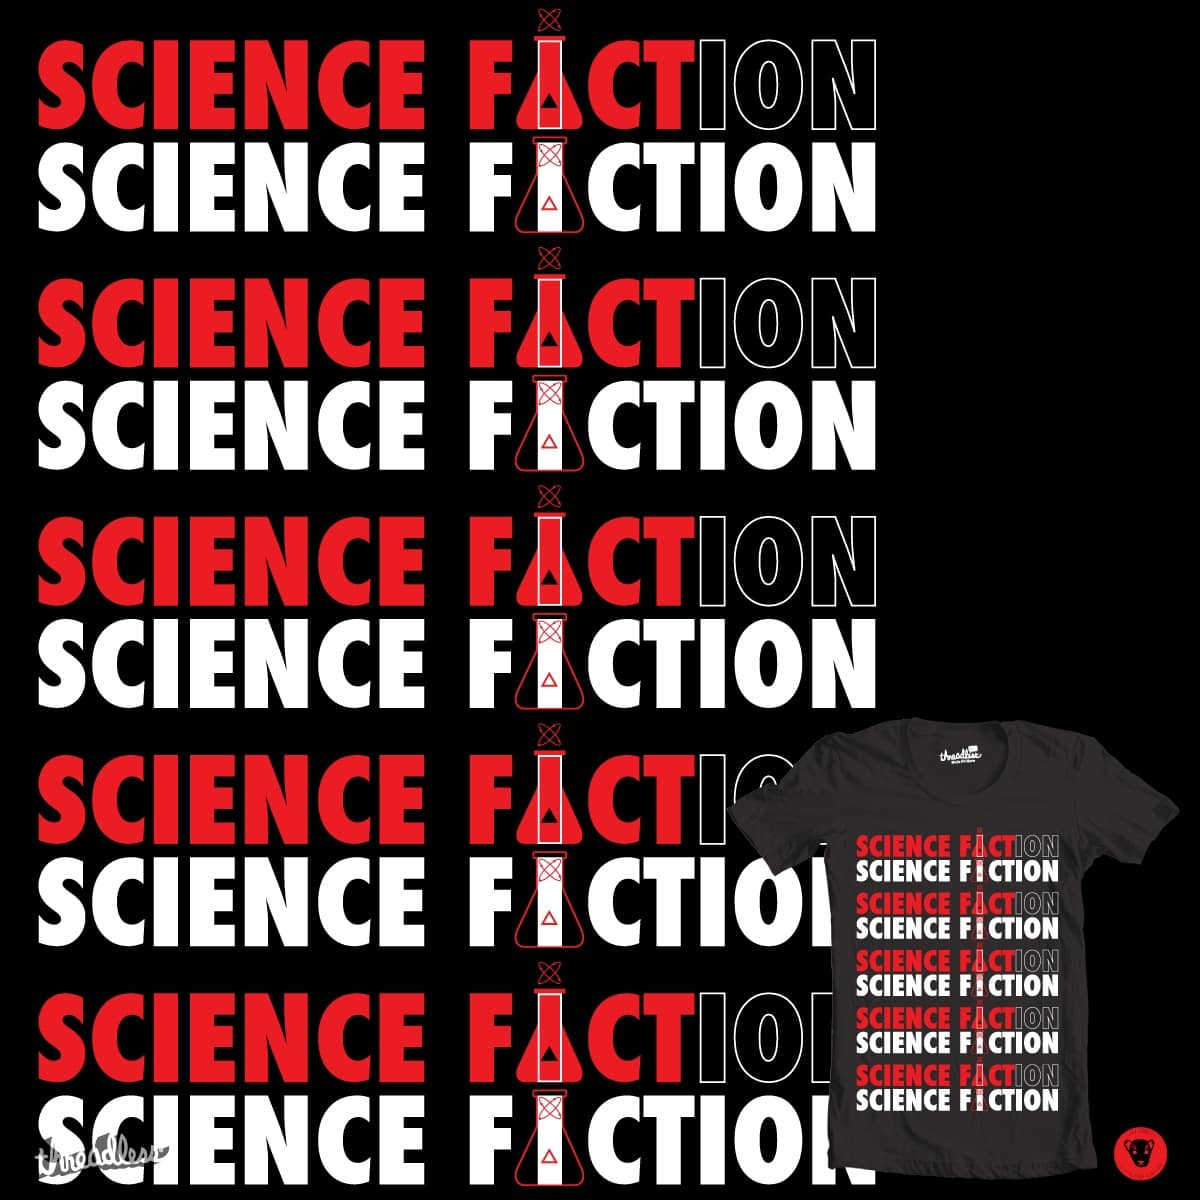 Sci Fact or Fiction by NJ Orange-Man on Threadless